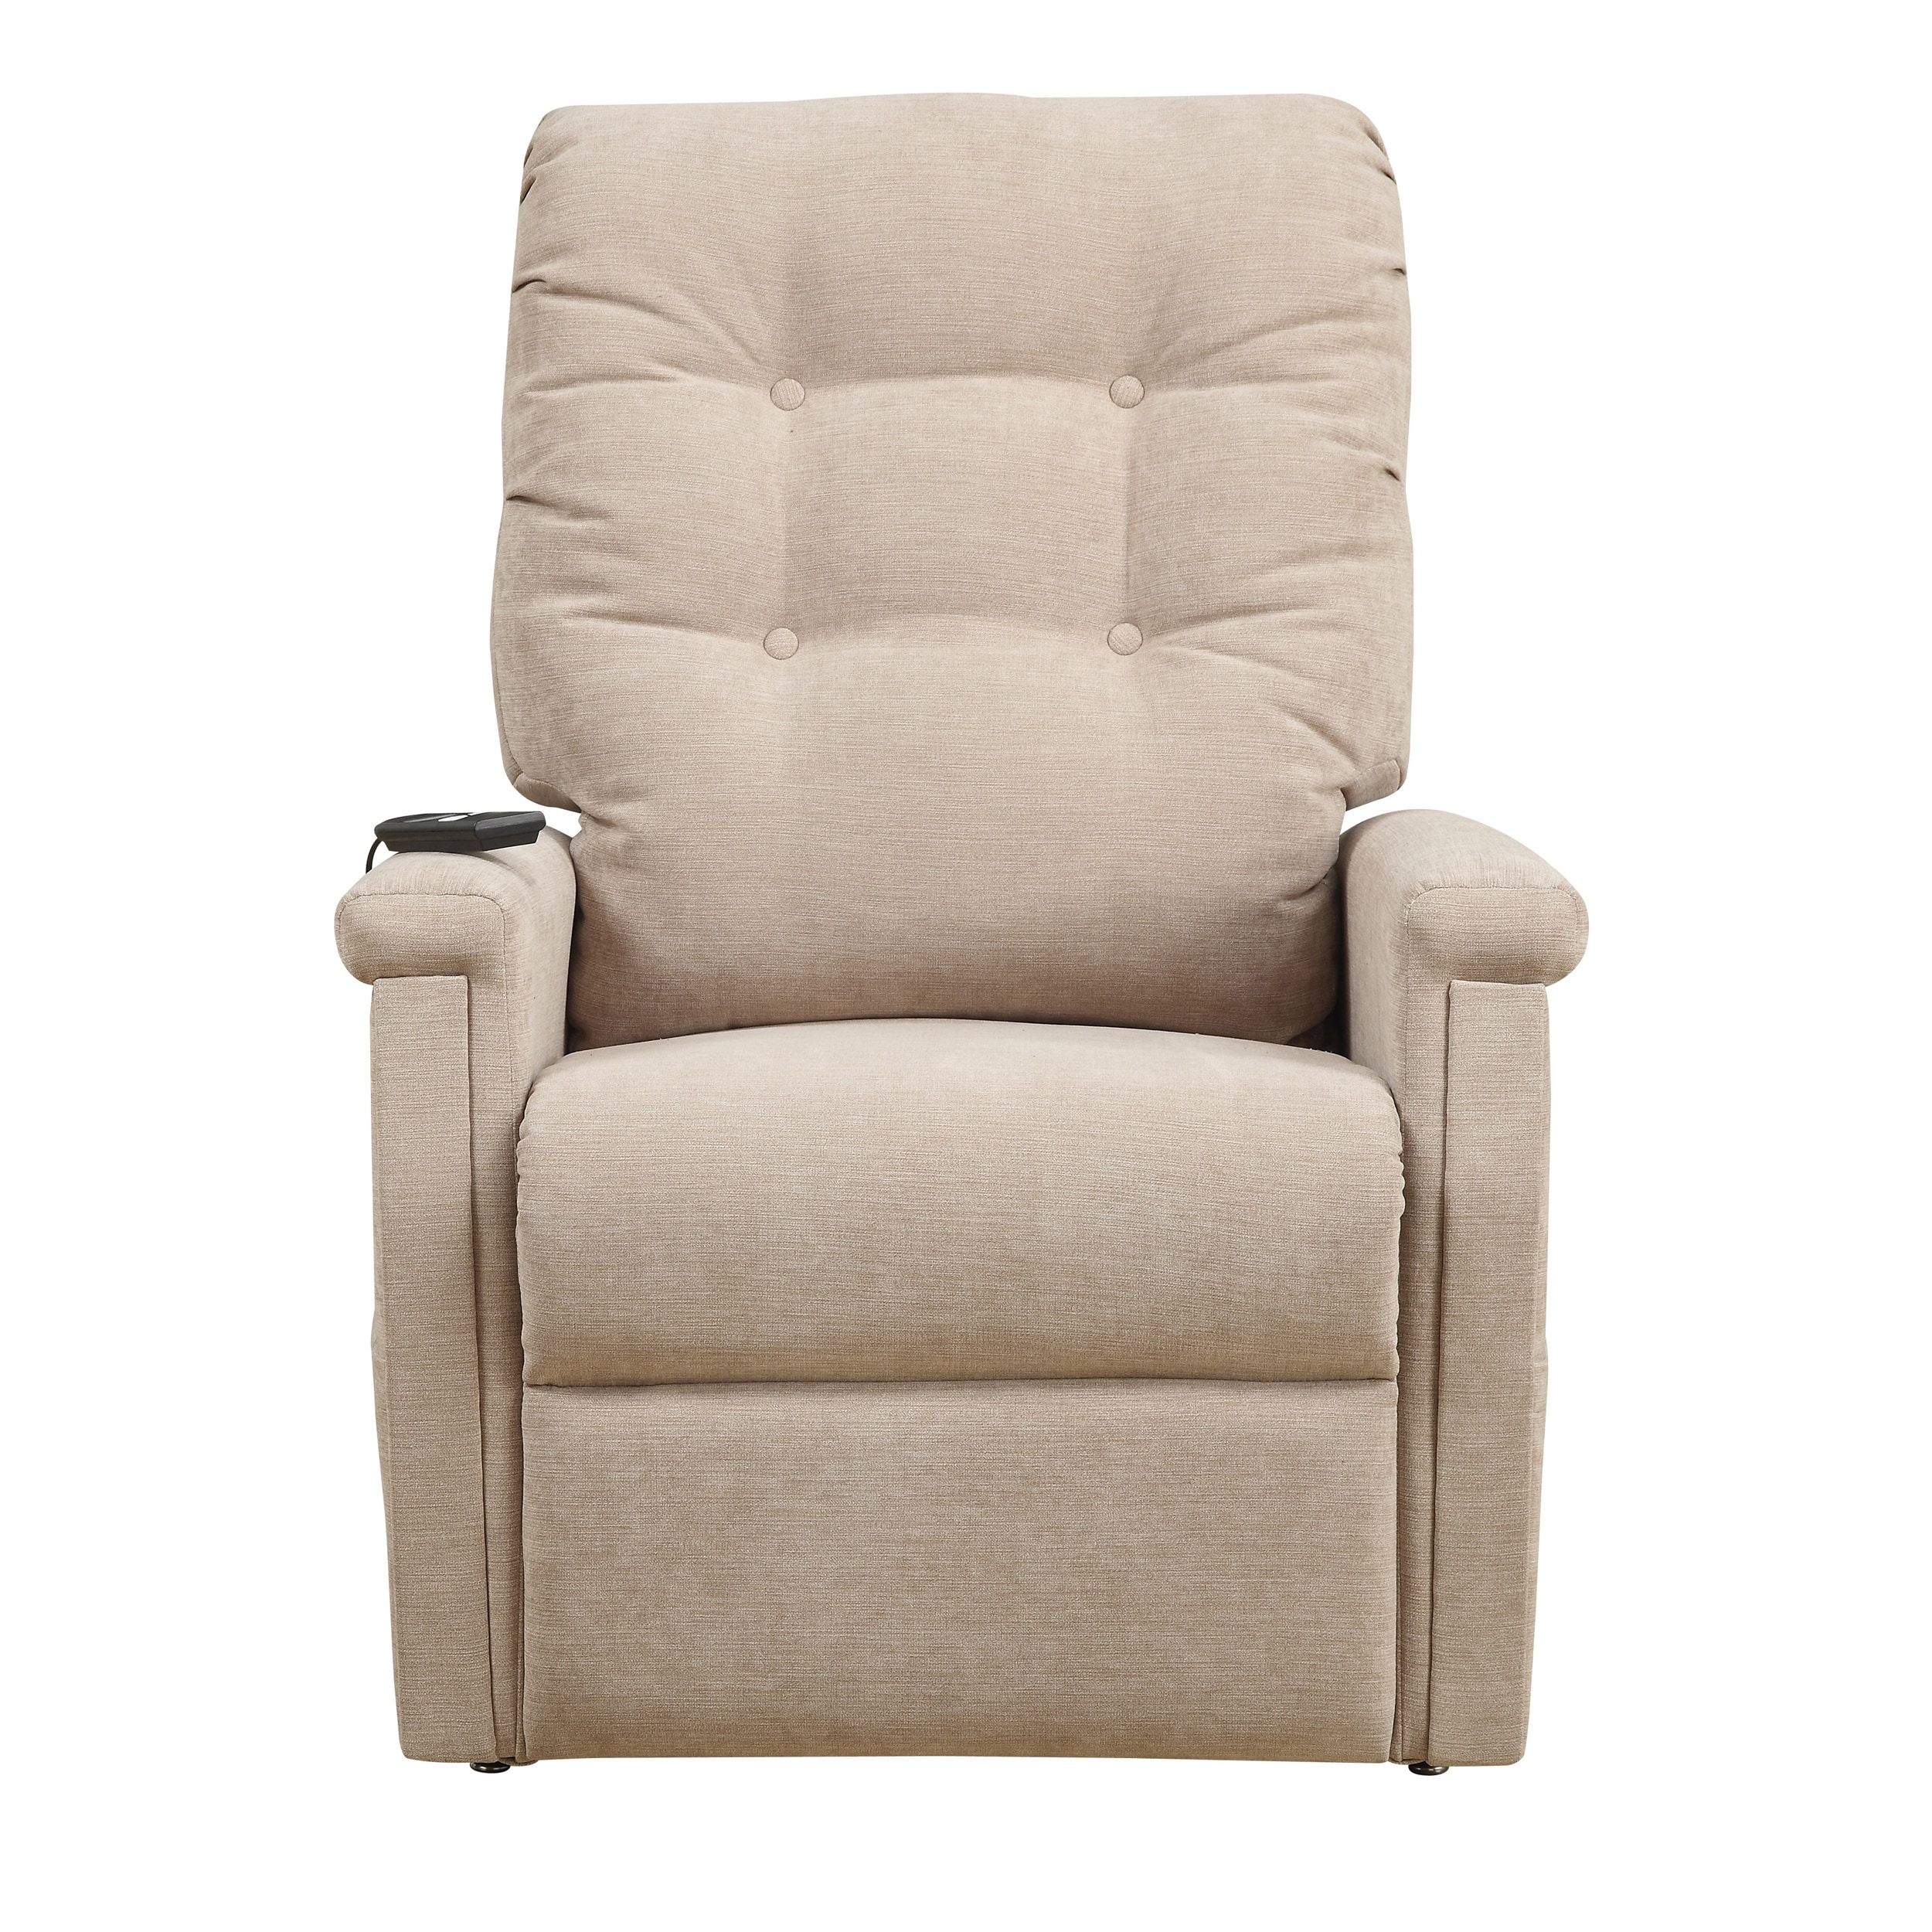 Shop Morton Beige Fabric Power Lift Chair Recliner   On Sale   Free  Shipping Today   Overstock.com   10303521